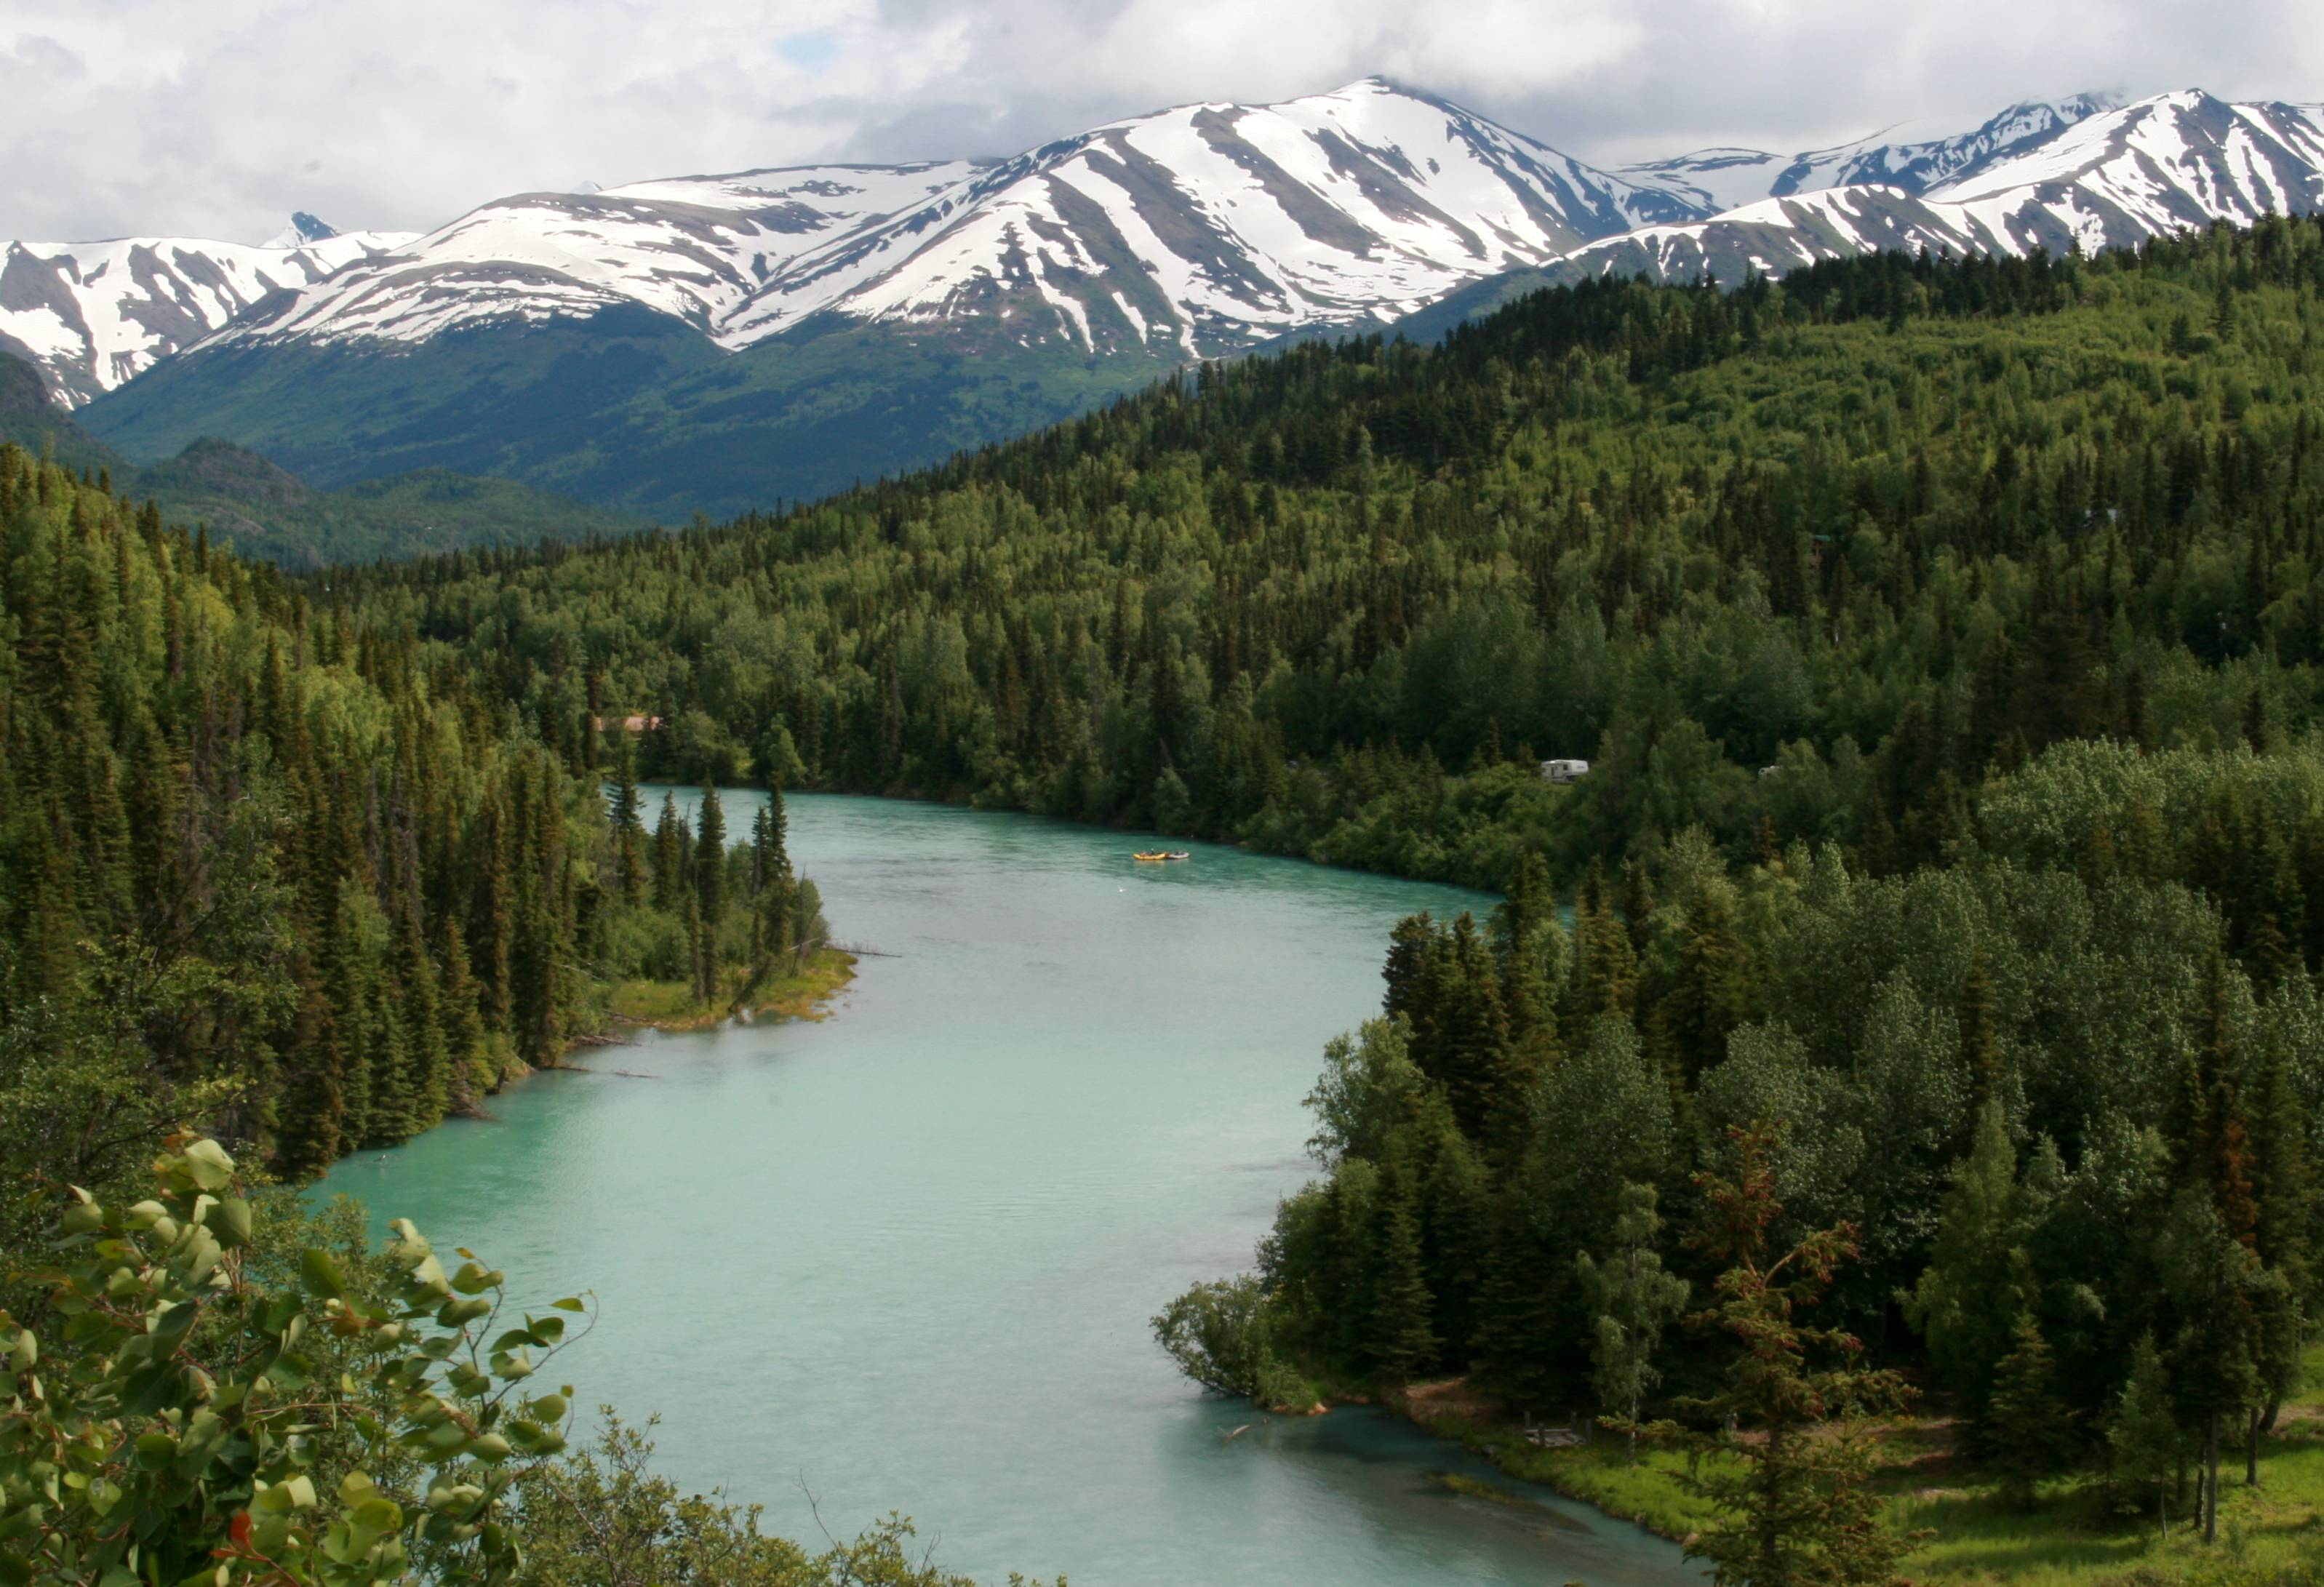 cooper landing dating News forums crime dating local news for cooper landing, ak continually updated from thousands of sources on the web tell me when there are new stories.